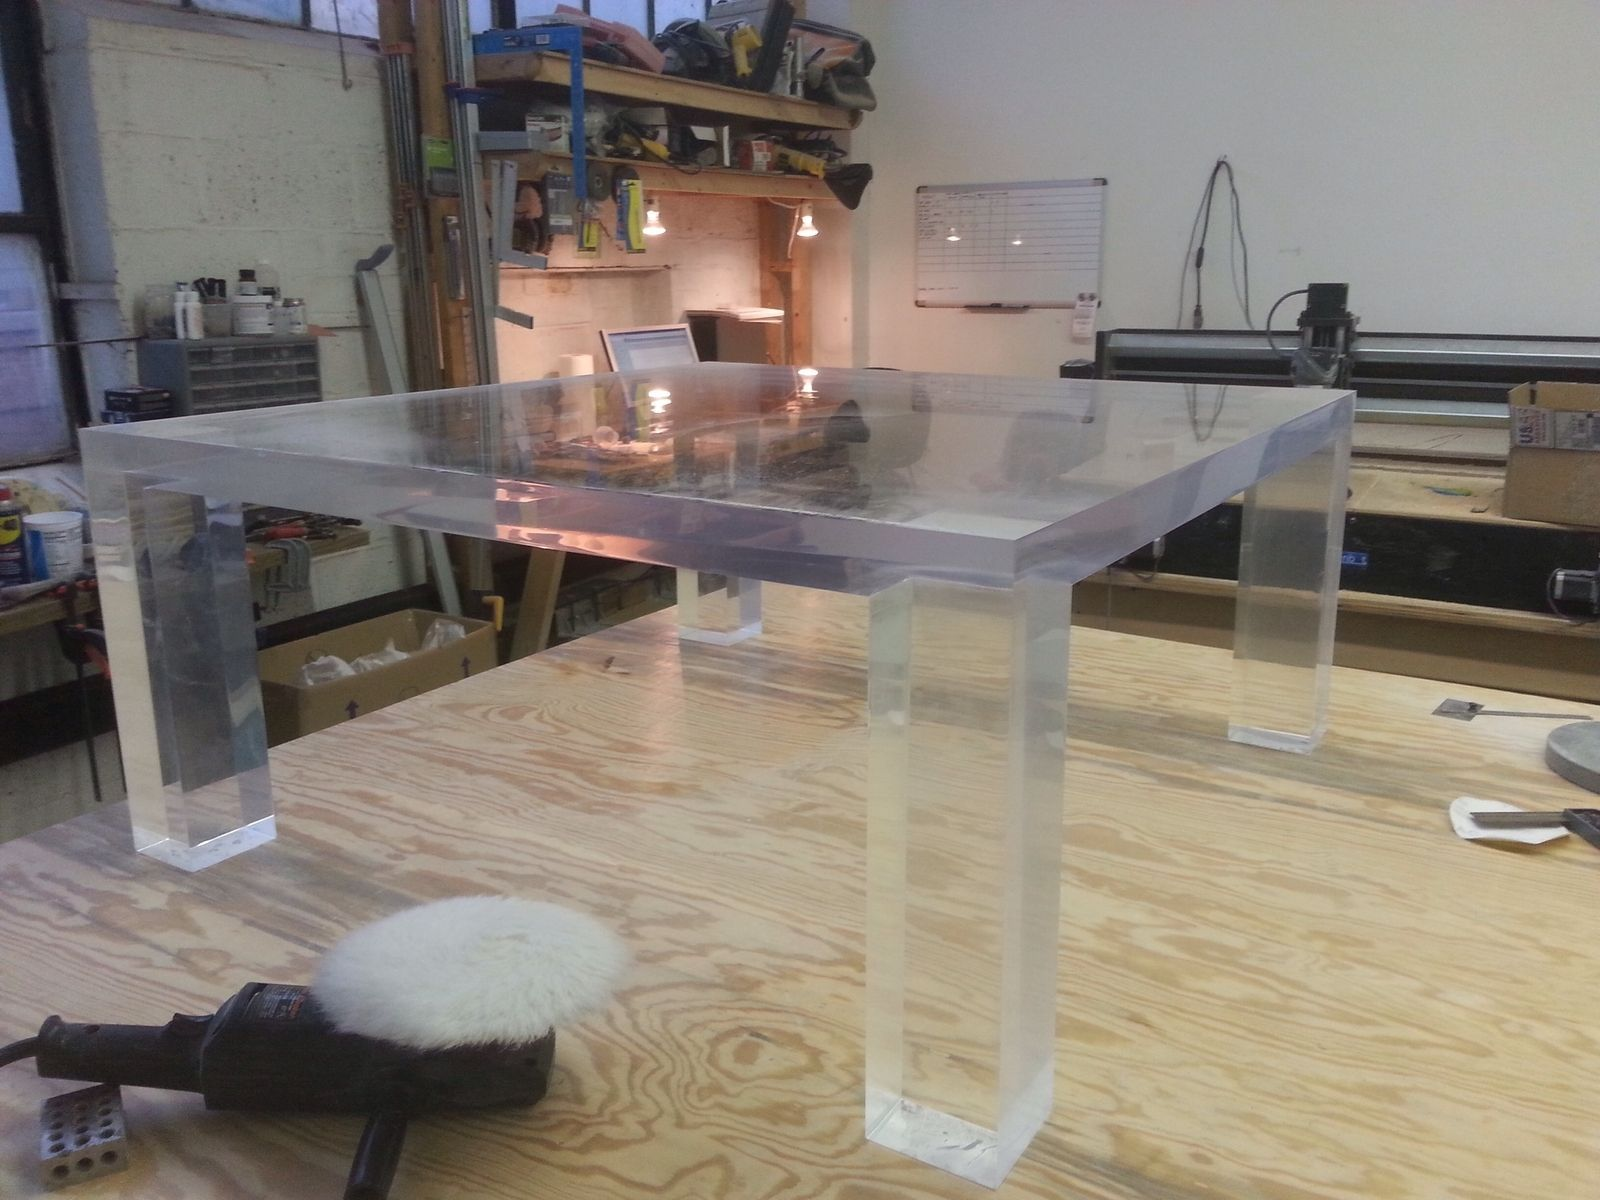 acrylic furniture toronto. Http://thippo.com/wp-content/uploads/2017/05/lucite-furniture-custom-acrylic -tables-desks-and-more-plexiglass-coffee-table-base-toronto-amazon-diy-products- Acrylic Furniture Toronto